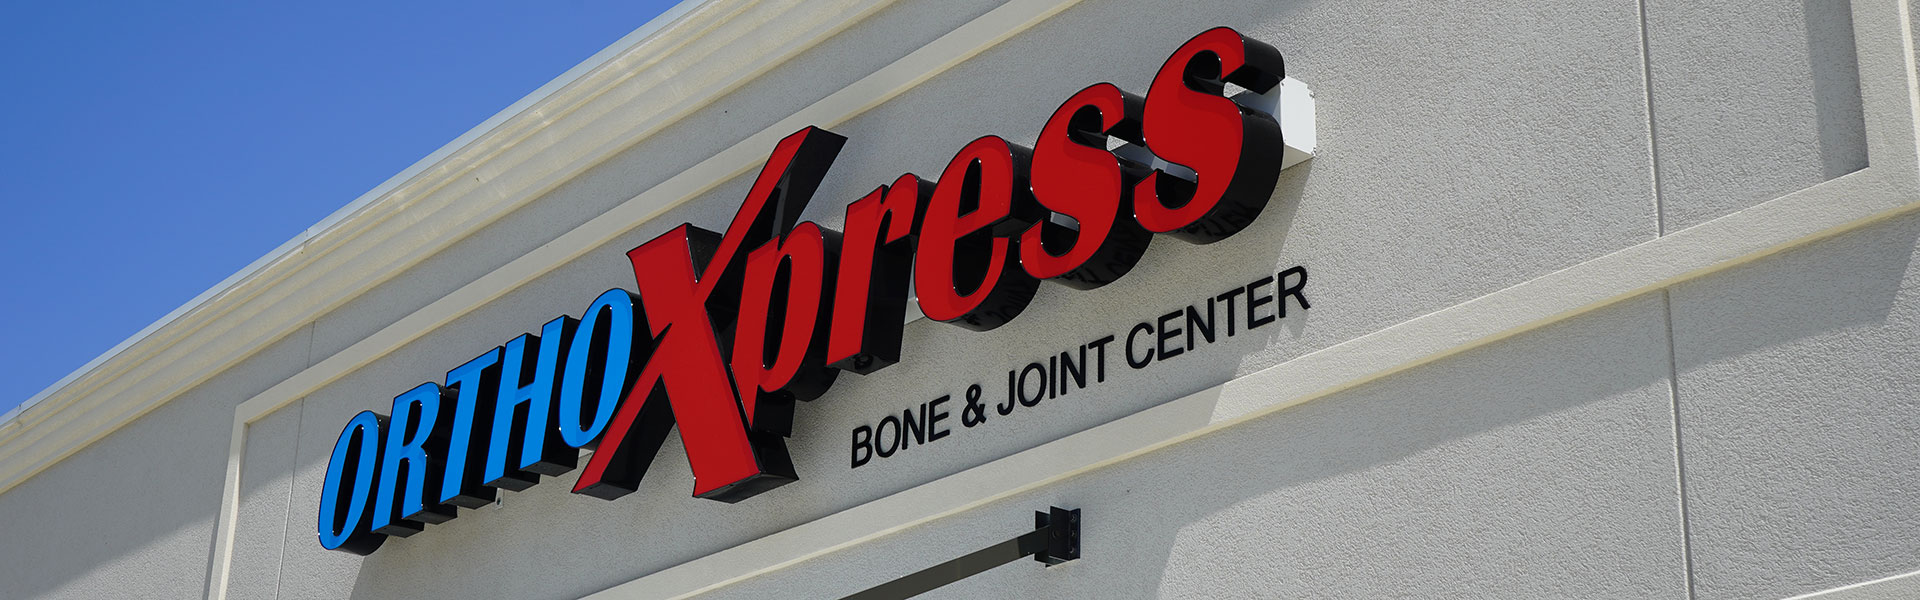 OrthoXpress of Holly Springs